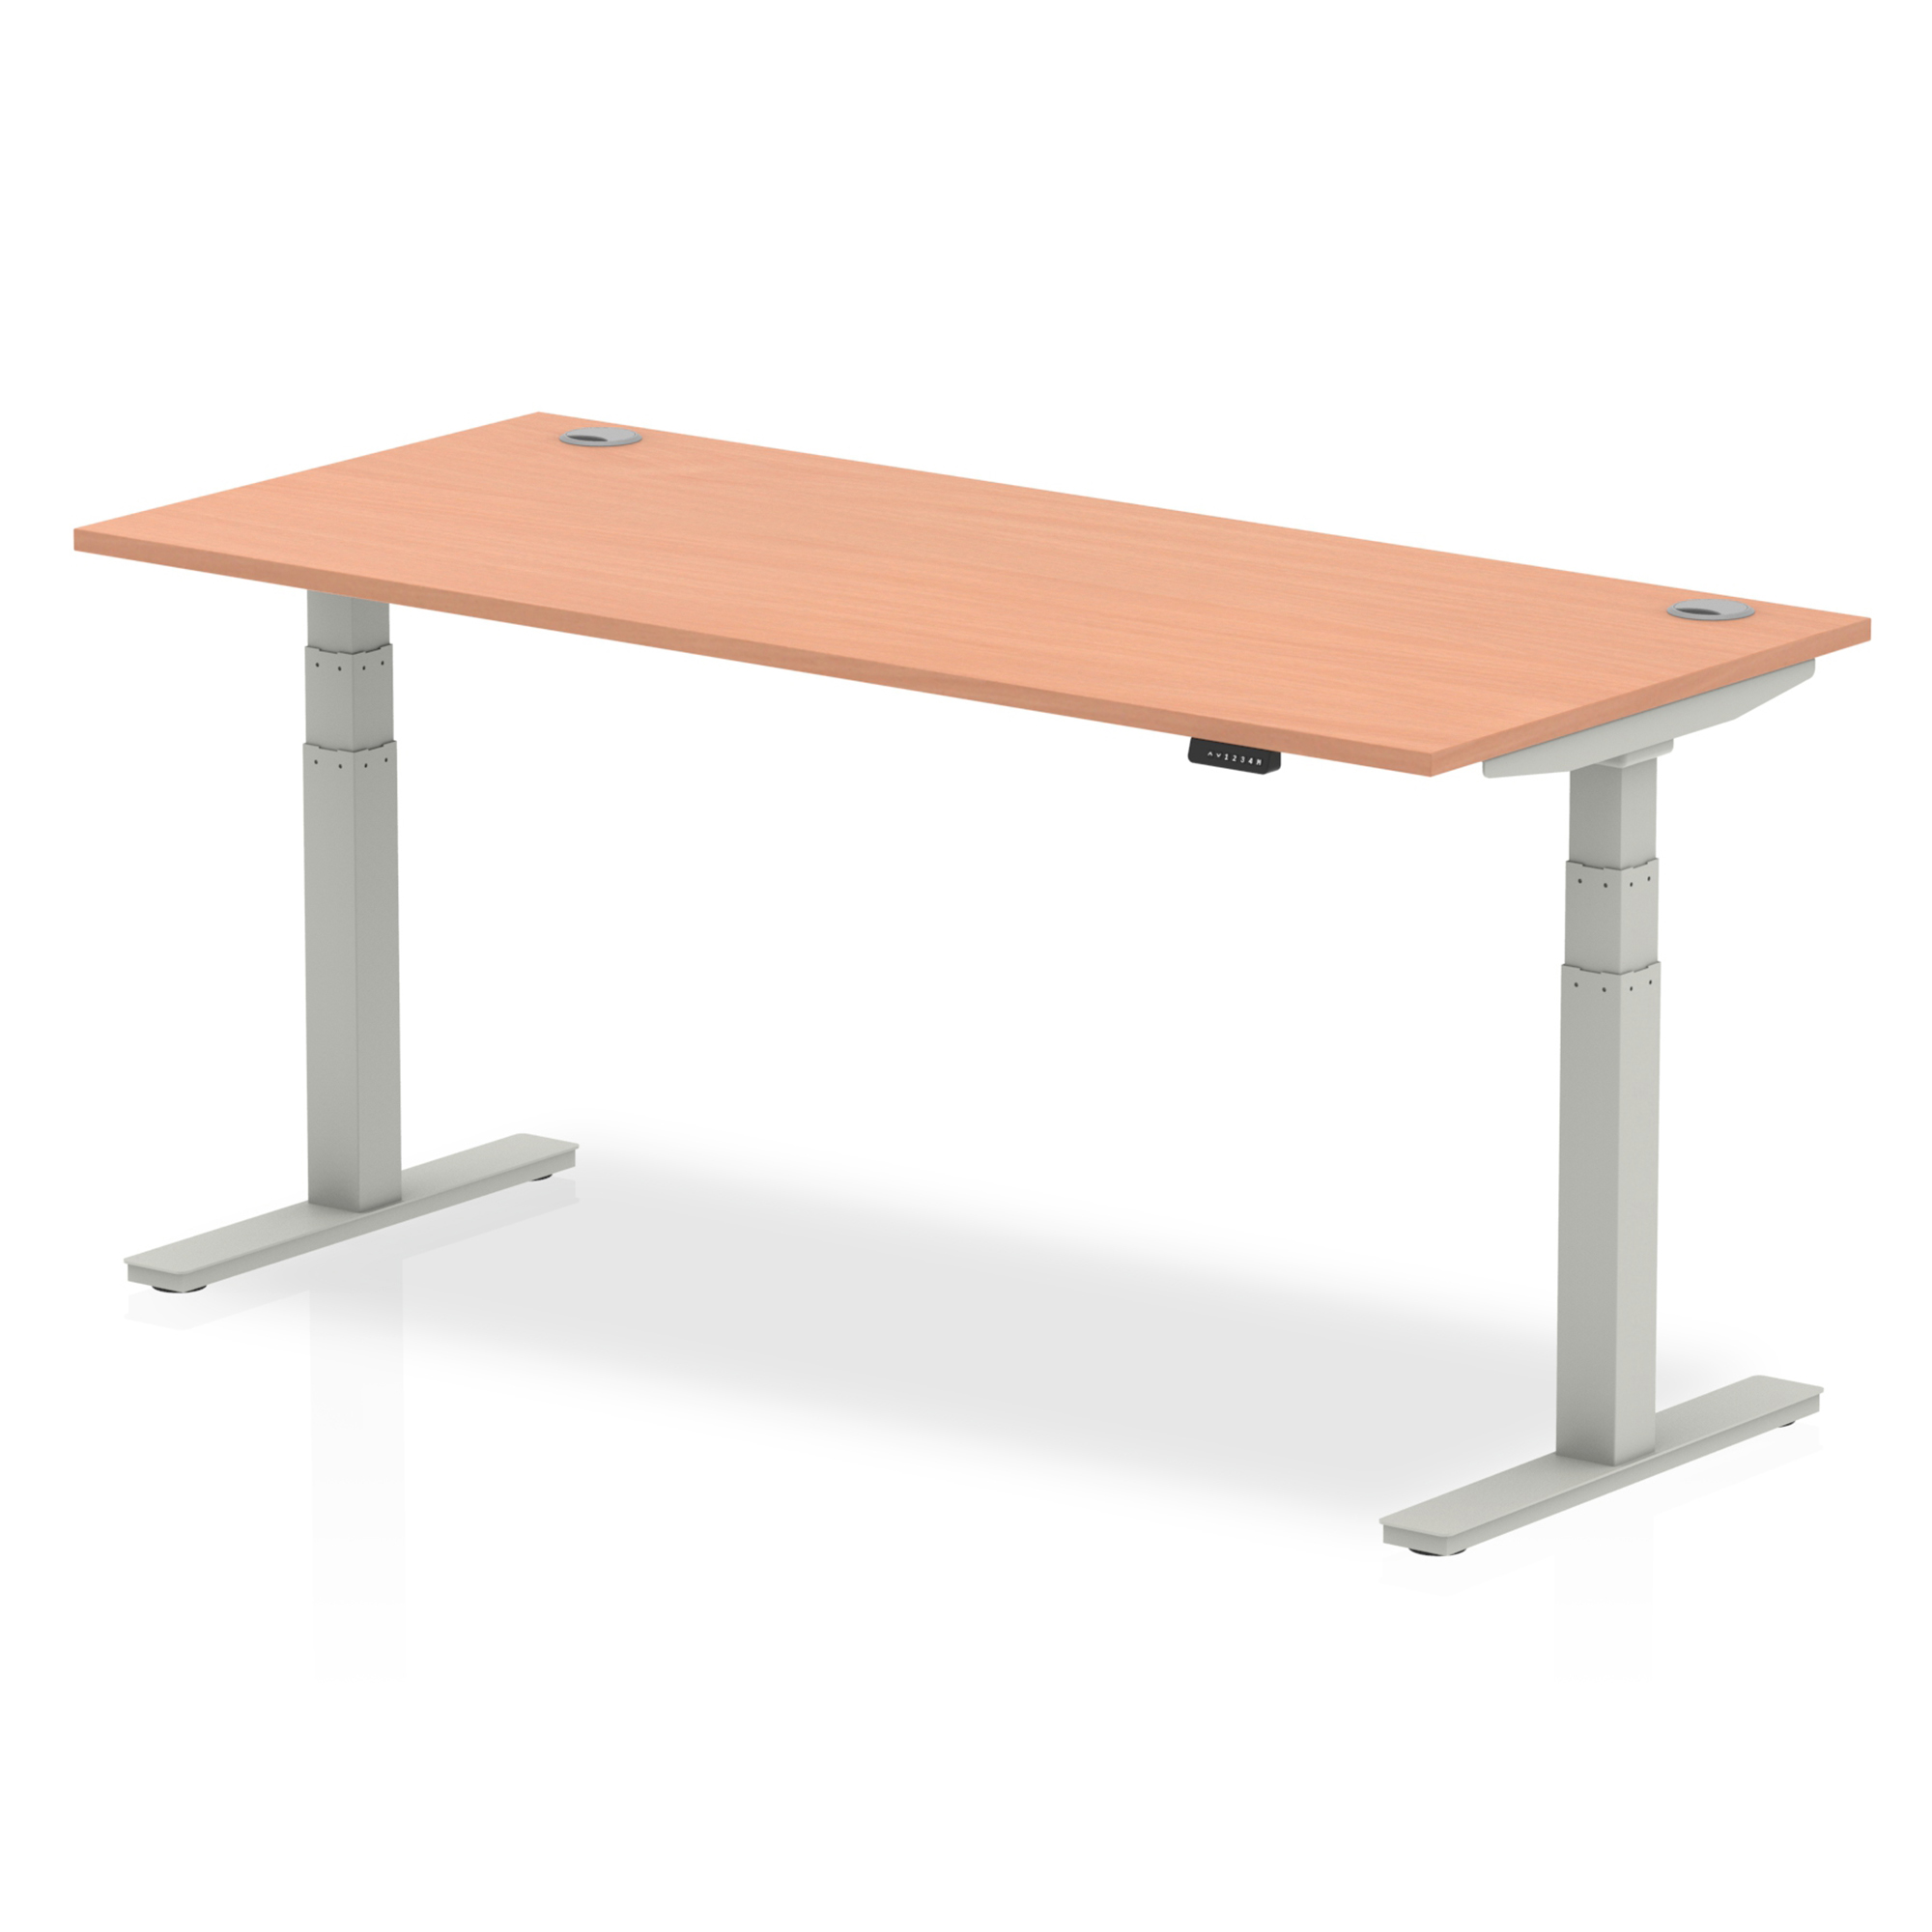 Trexus Sit Stand Desk With Cable Ports Silver Legs 1800x800mm Beech Ref HA01084